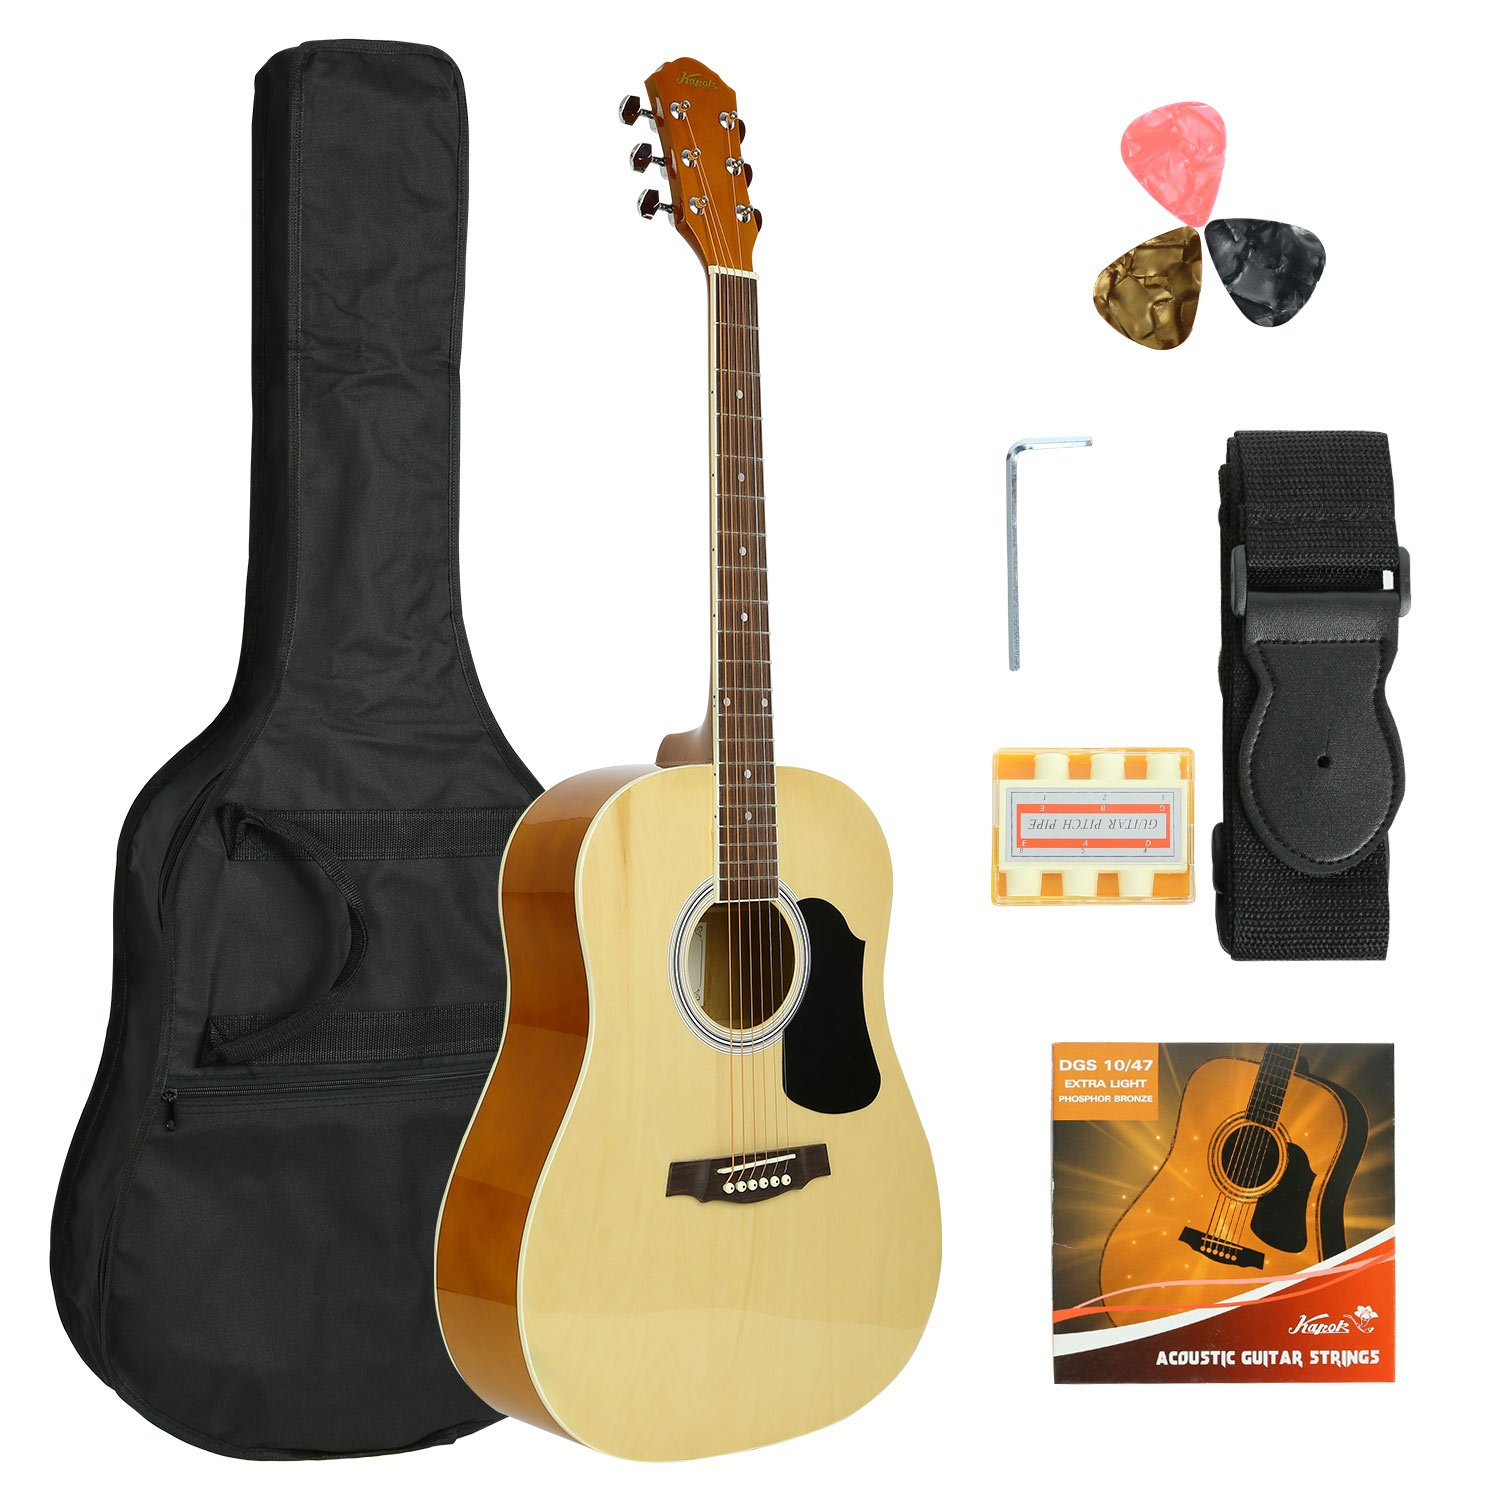 KAPOK AZ24DNPACK41-OB Full Size 41'' Acoustic Dreadnought Guitar with Bag & More Accessories, String, Picks, Strap and Pitch Pipes, Entry Level, Natural